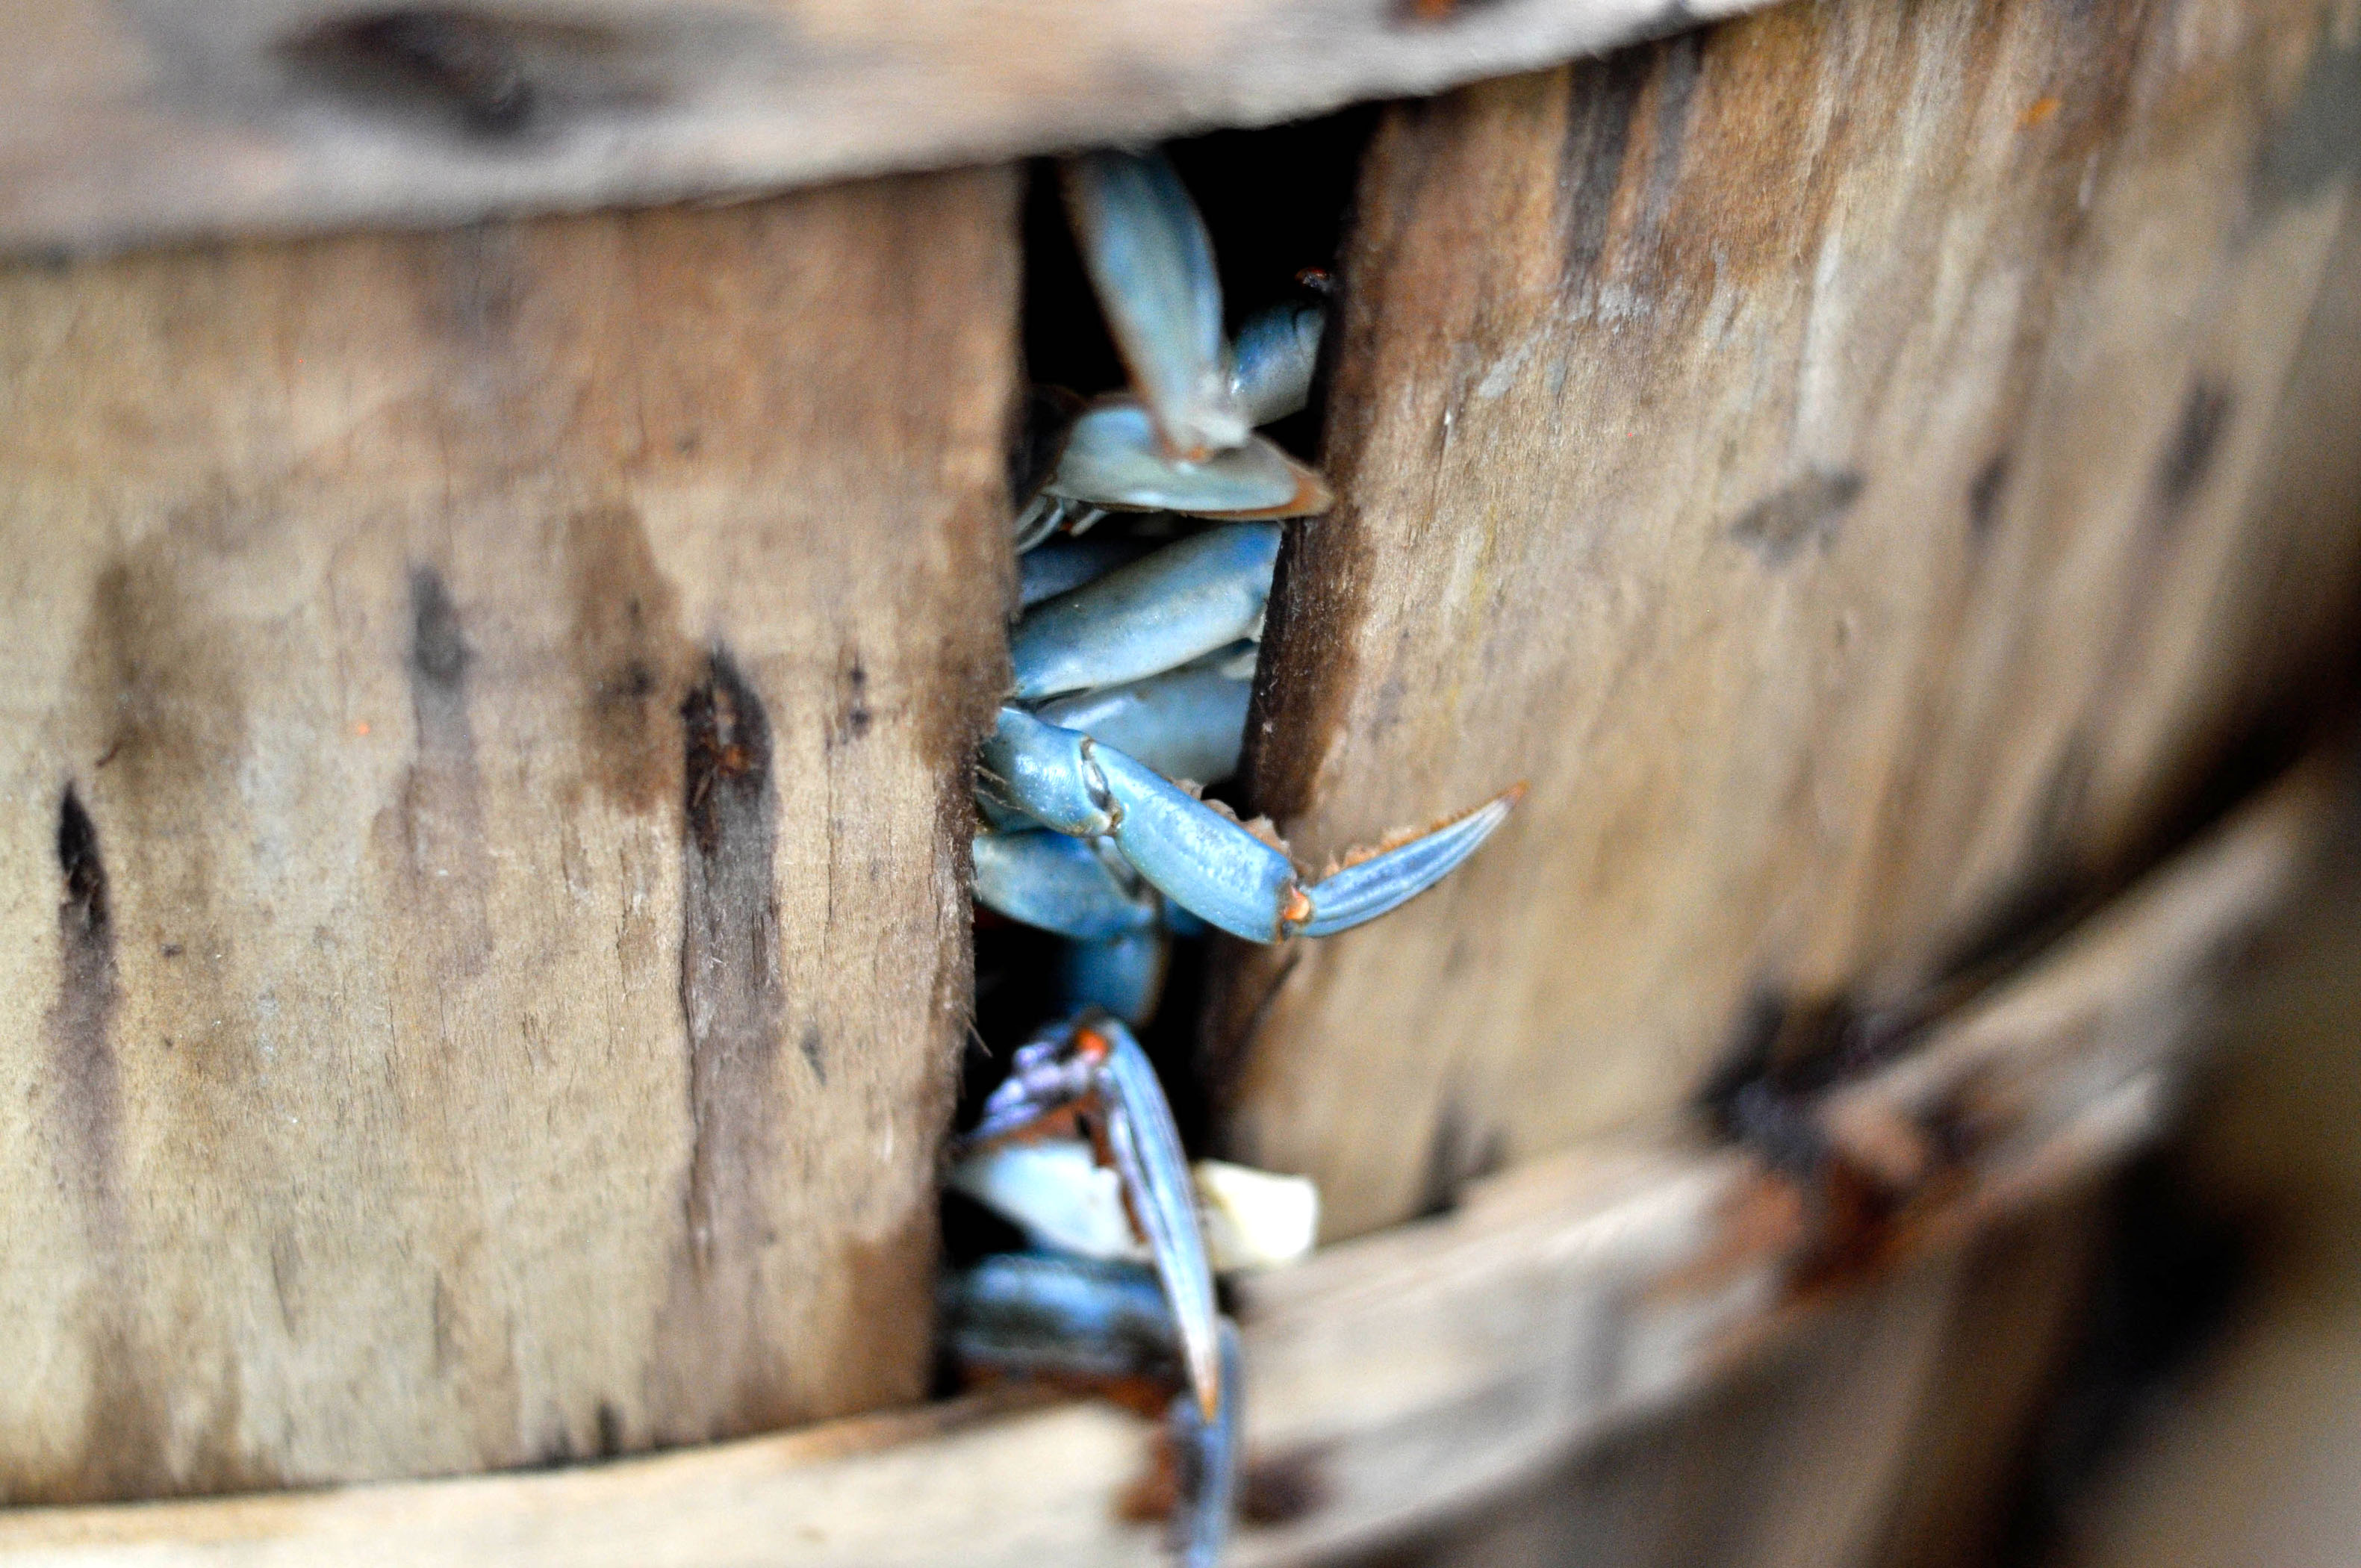 Crabs in Wooden Buckets Image